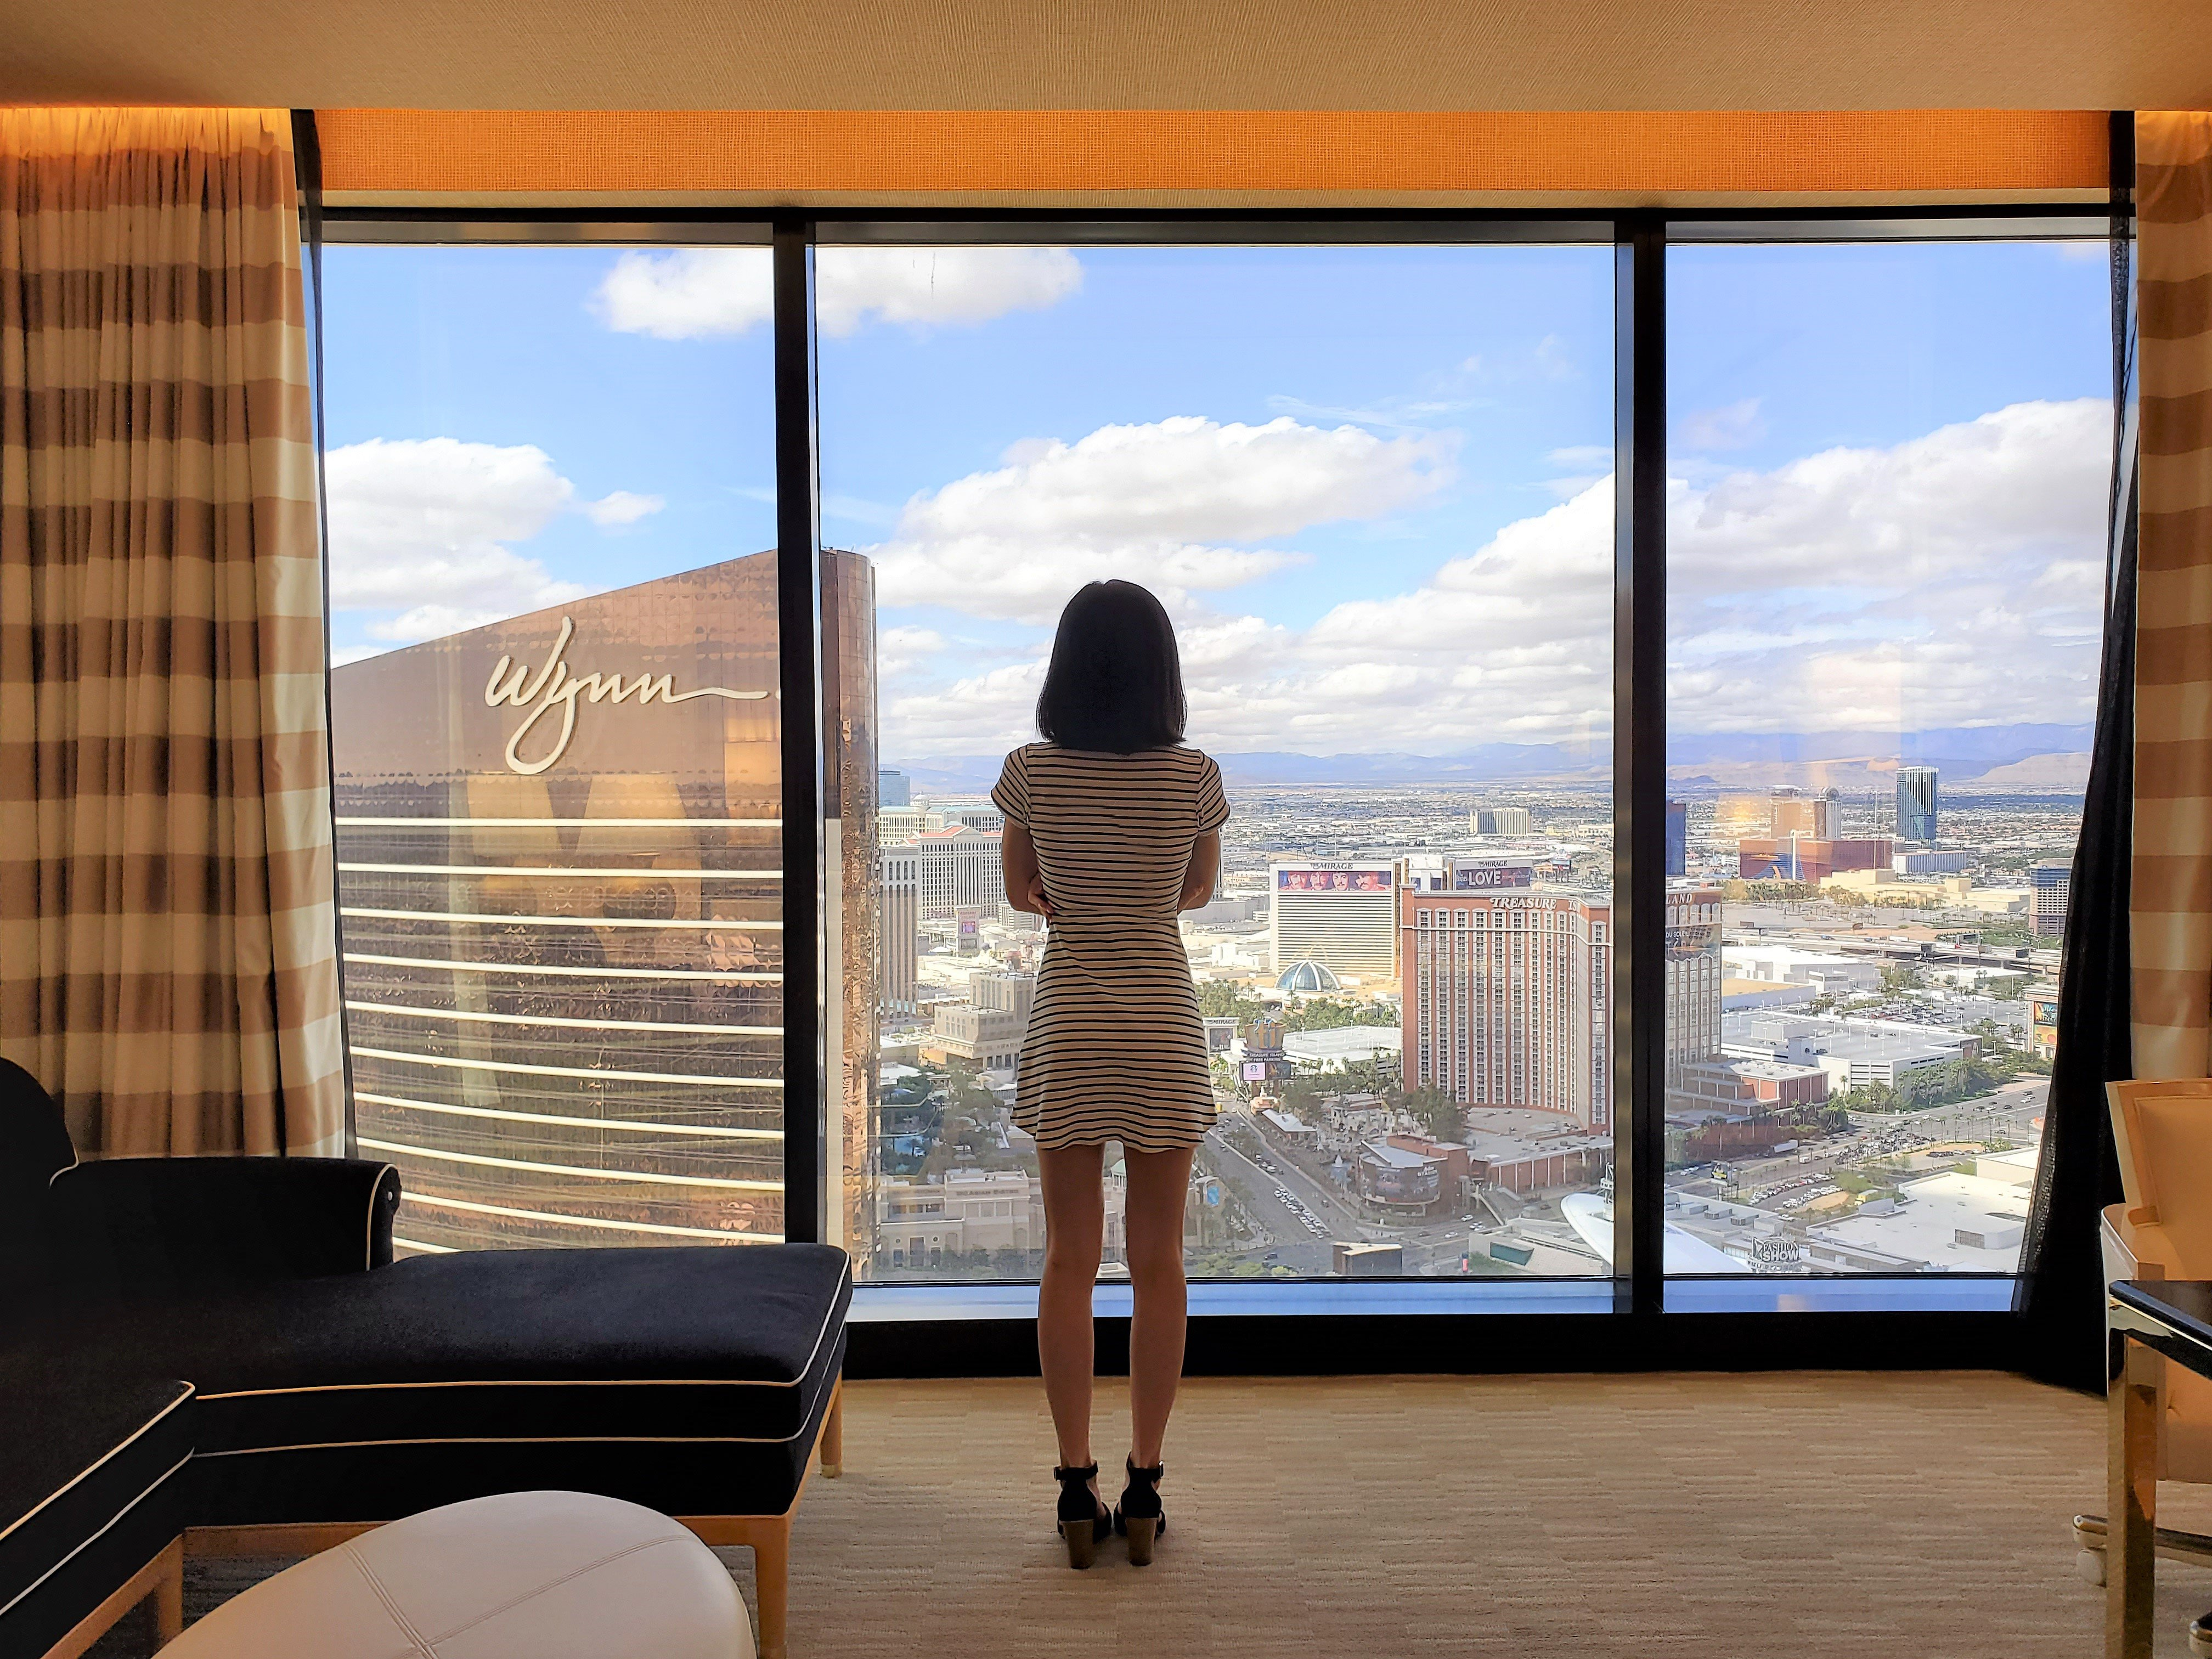 Trip Report – Las Vegas Day 1